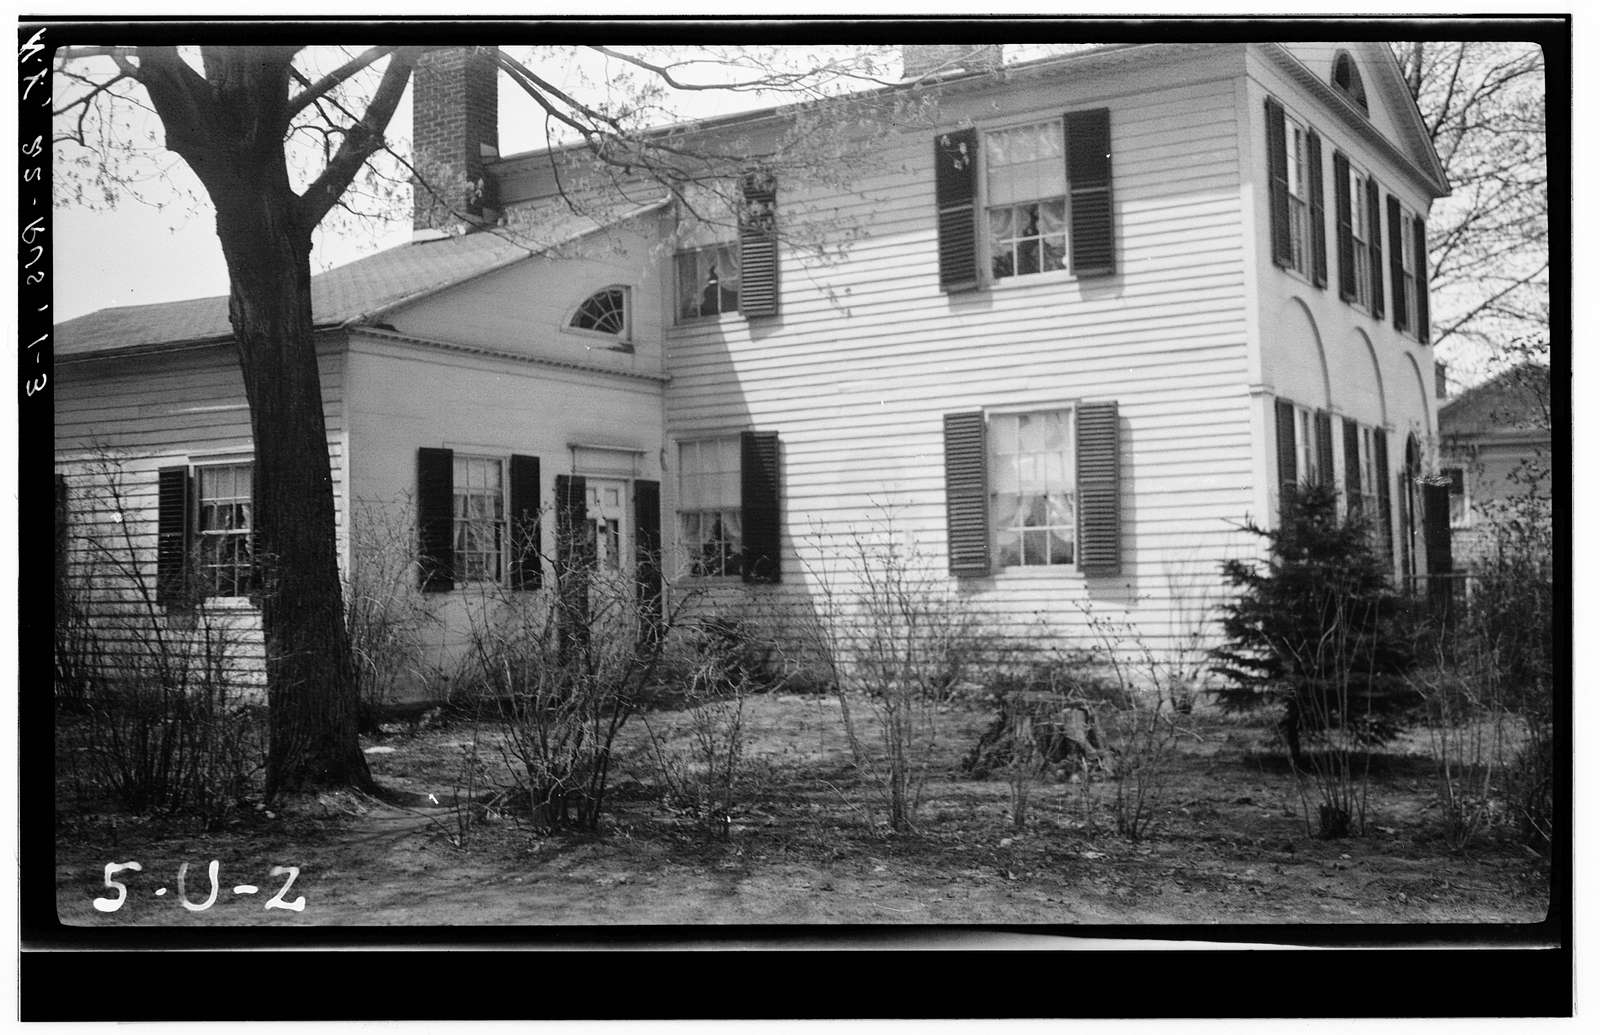 Butler House, State Road, Russia, Herkimer County, NY